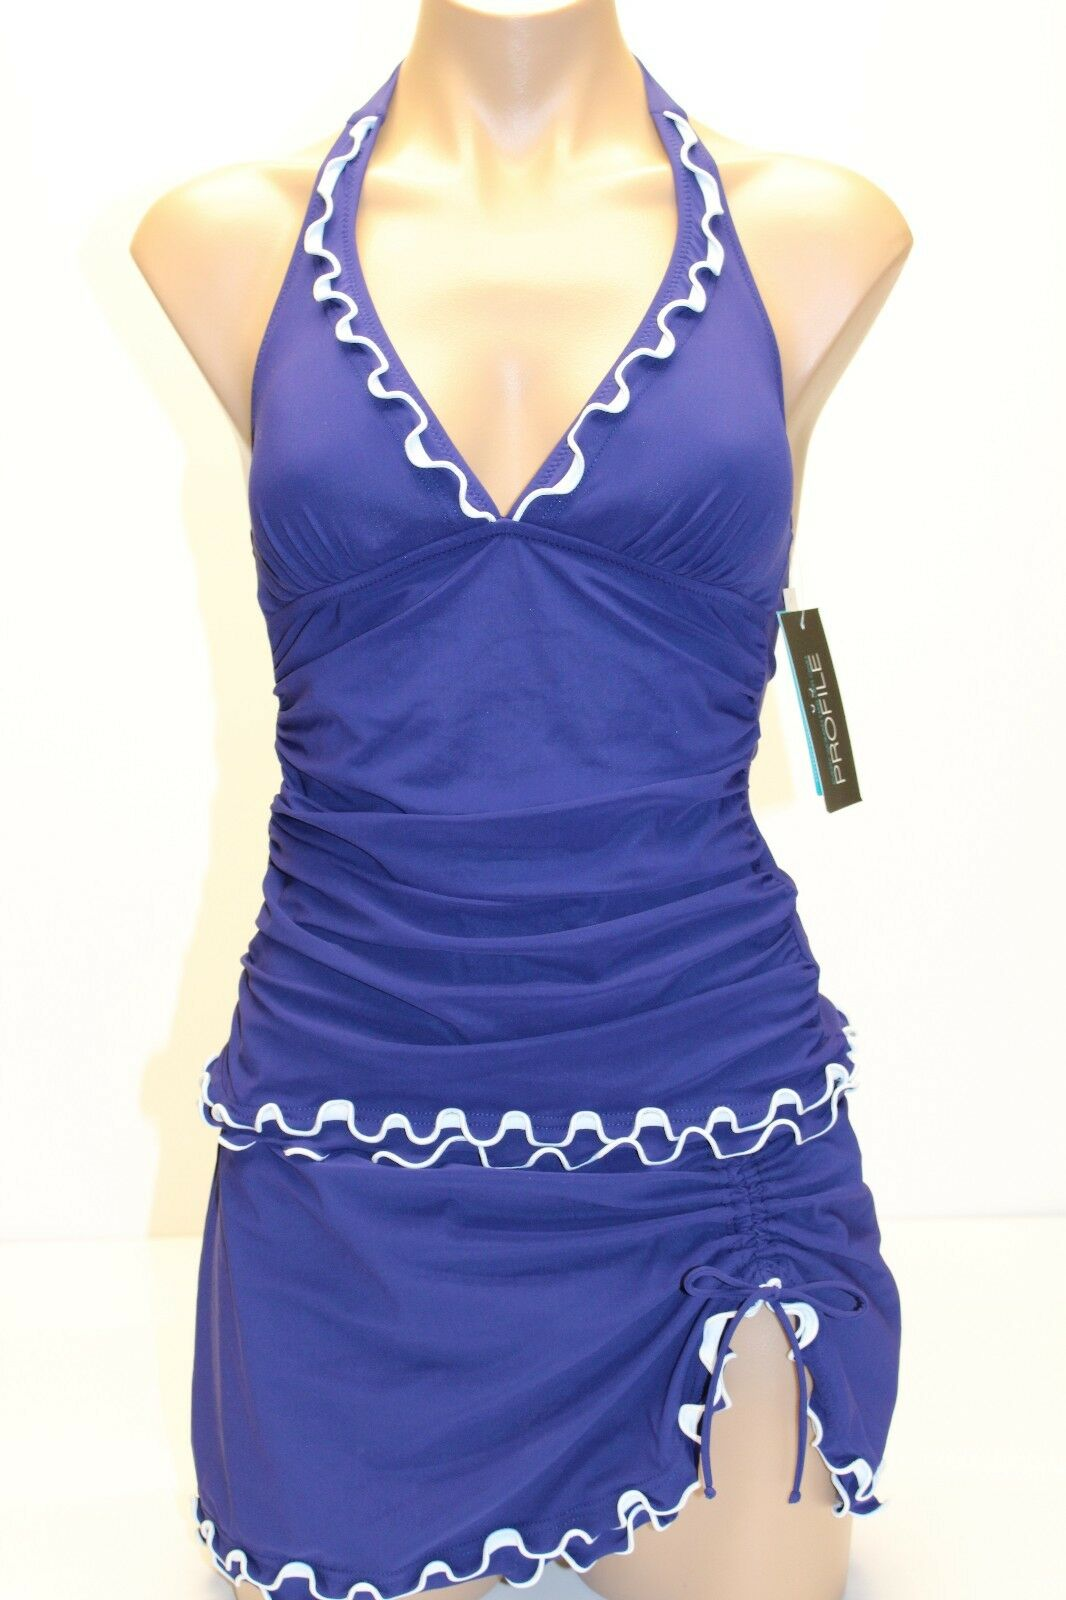 NWT Profile by Gottex Swimsuit Tankini 2pc Set bluee Ink Ruffled Halter Sz 6